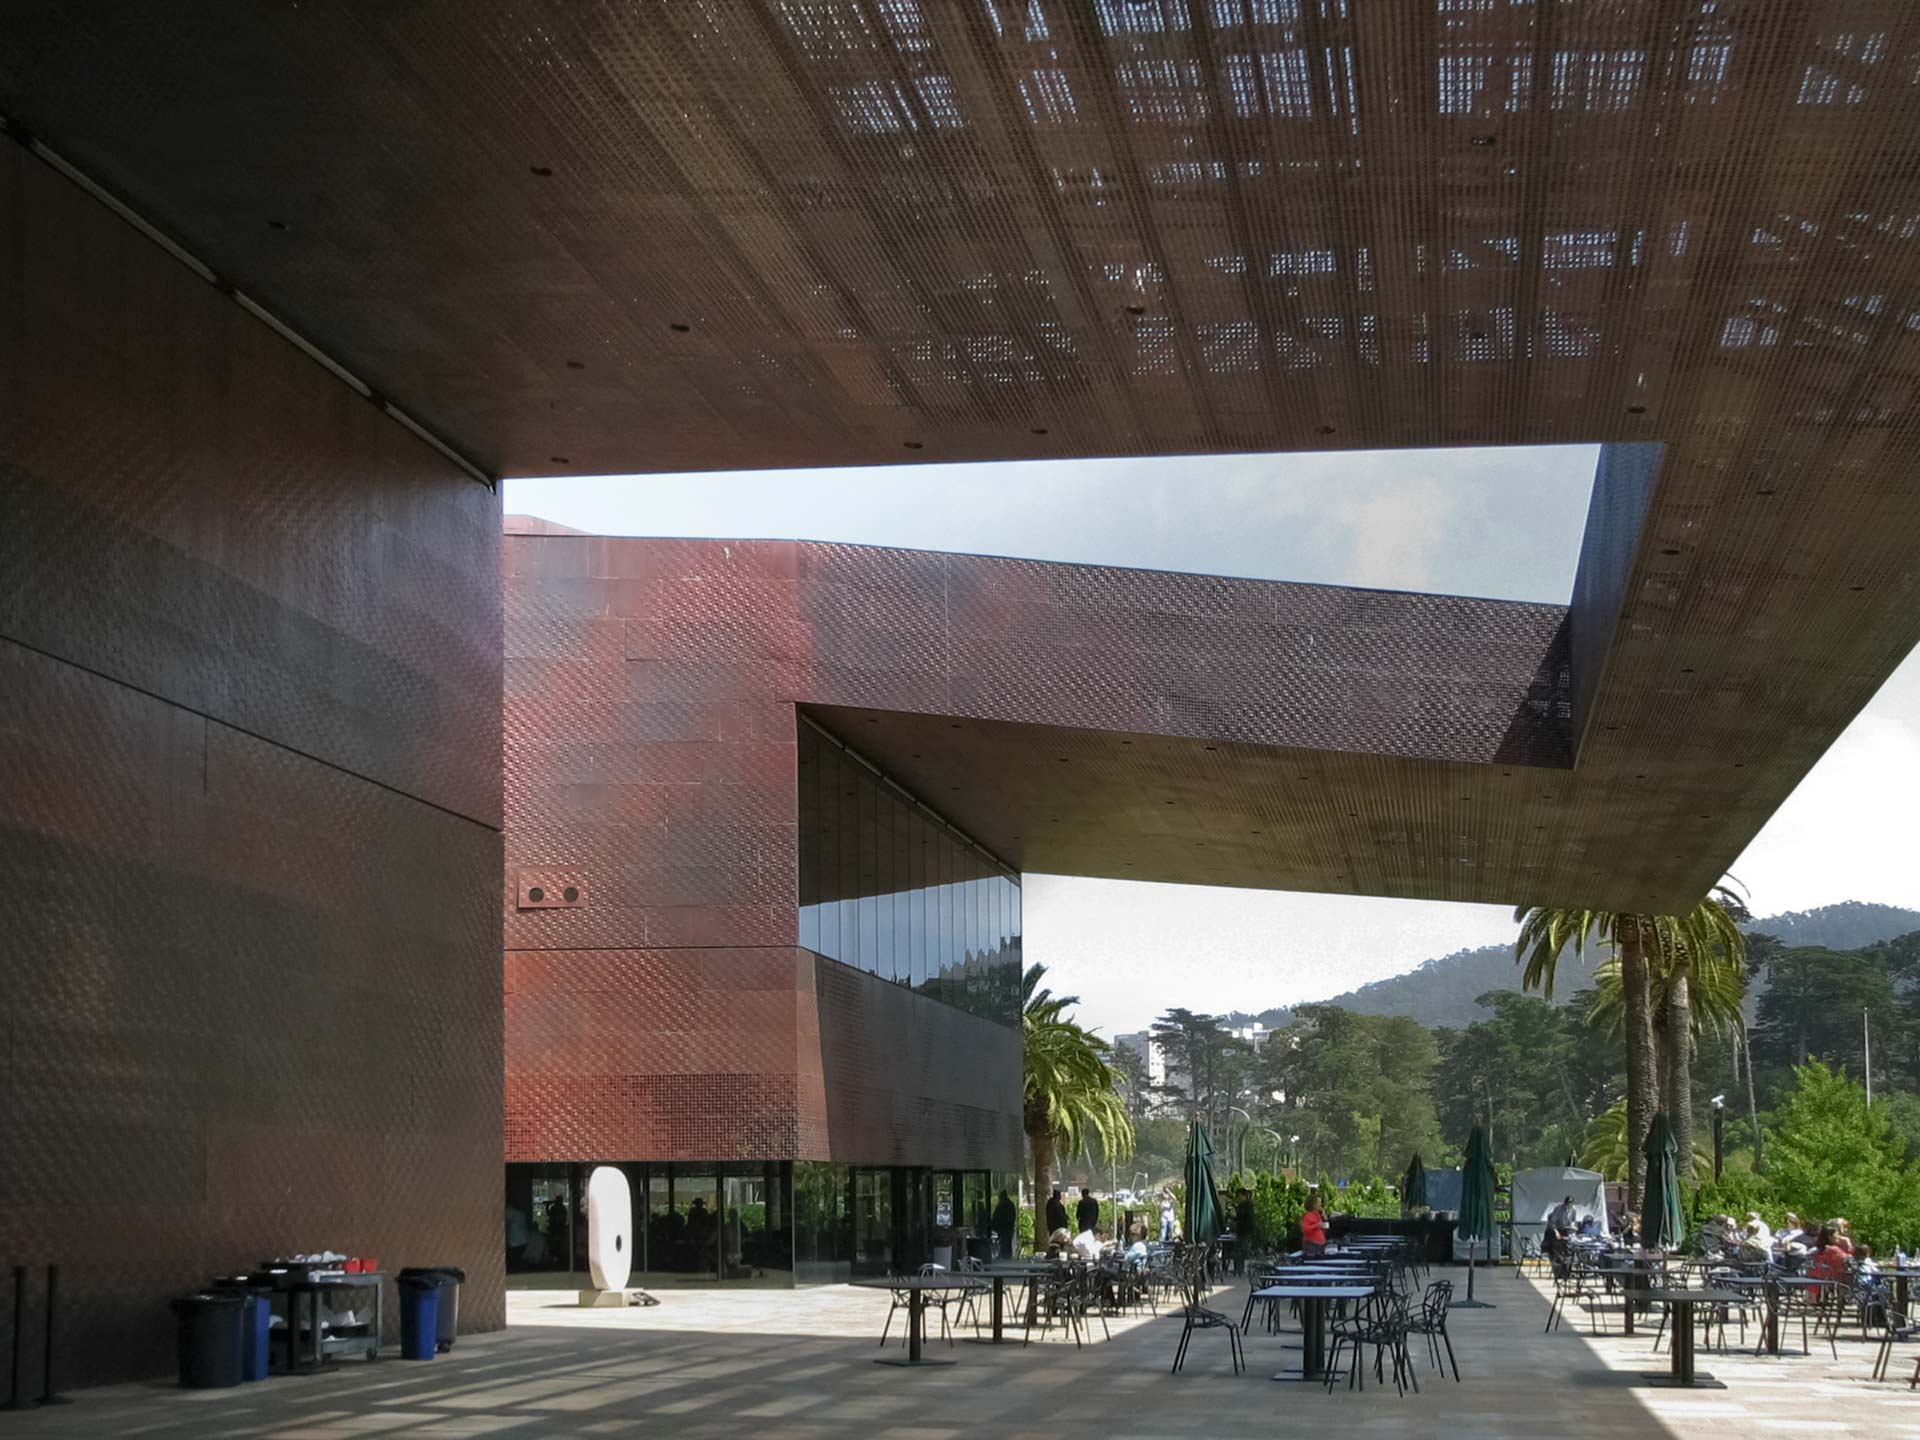 Outdoor cafe under the de Young Museum canopy awning